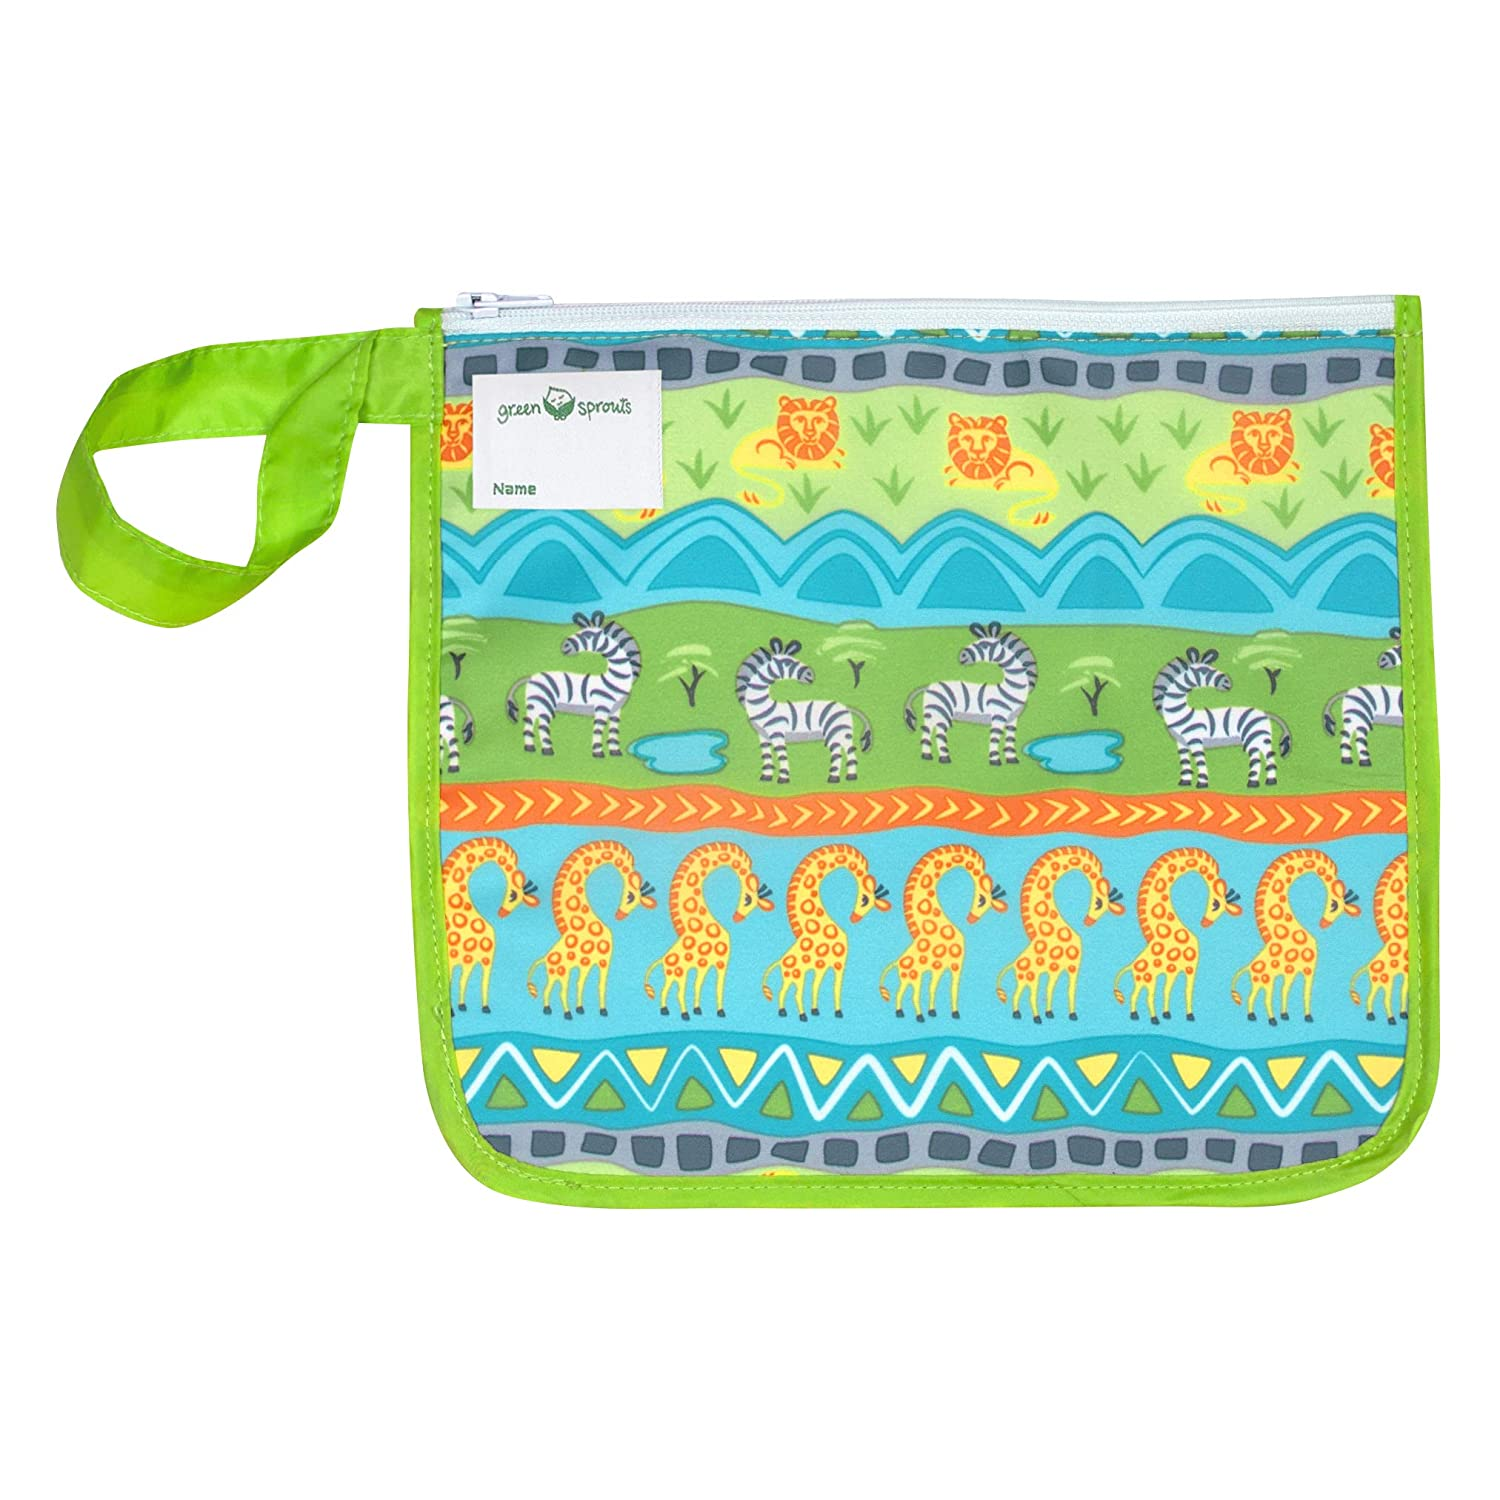 green sprouts Reusable Insulated Sandwich Bag, Holds Food, Utensils, Wipes and More, Keeps Food Fresh, Food-Safe, Waterproof, Easy-Clean Material